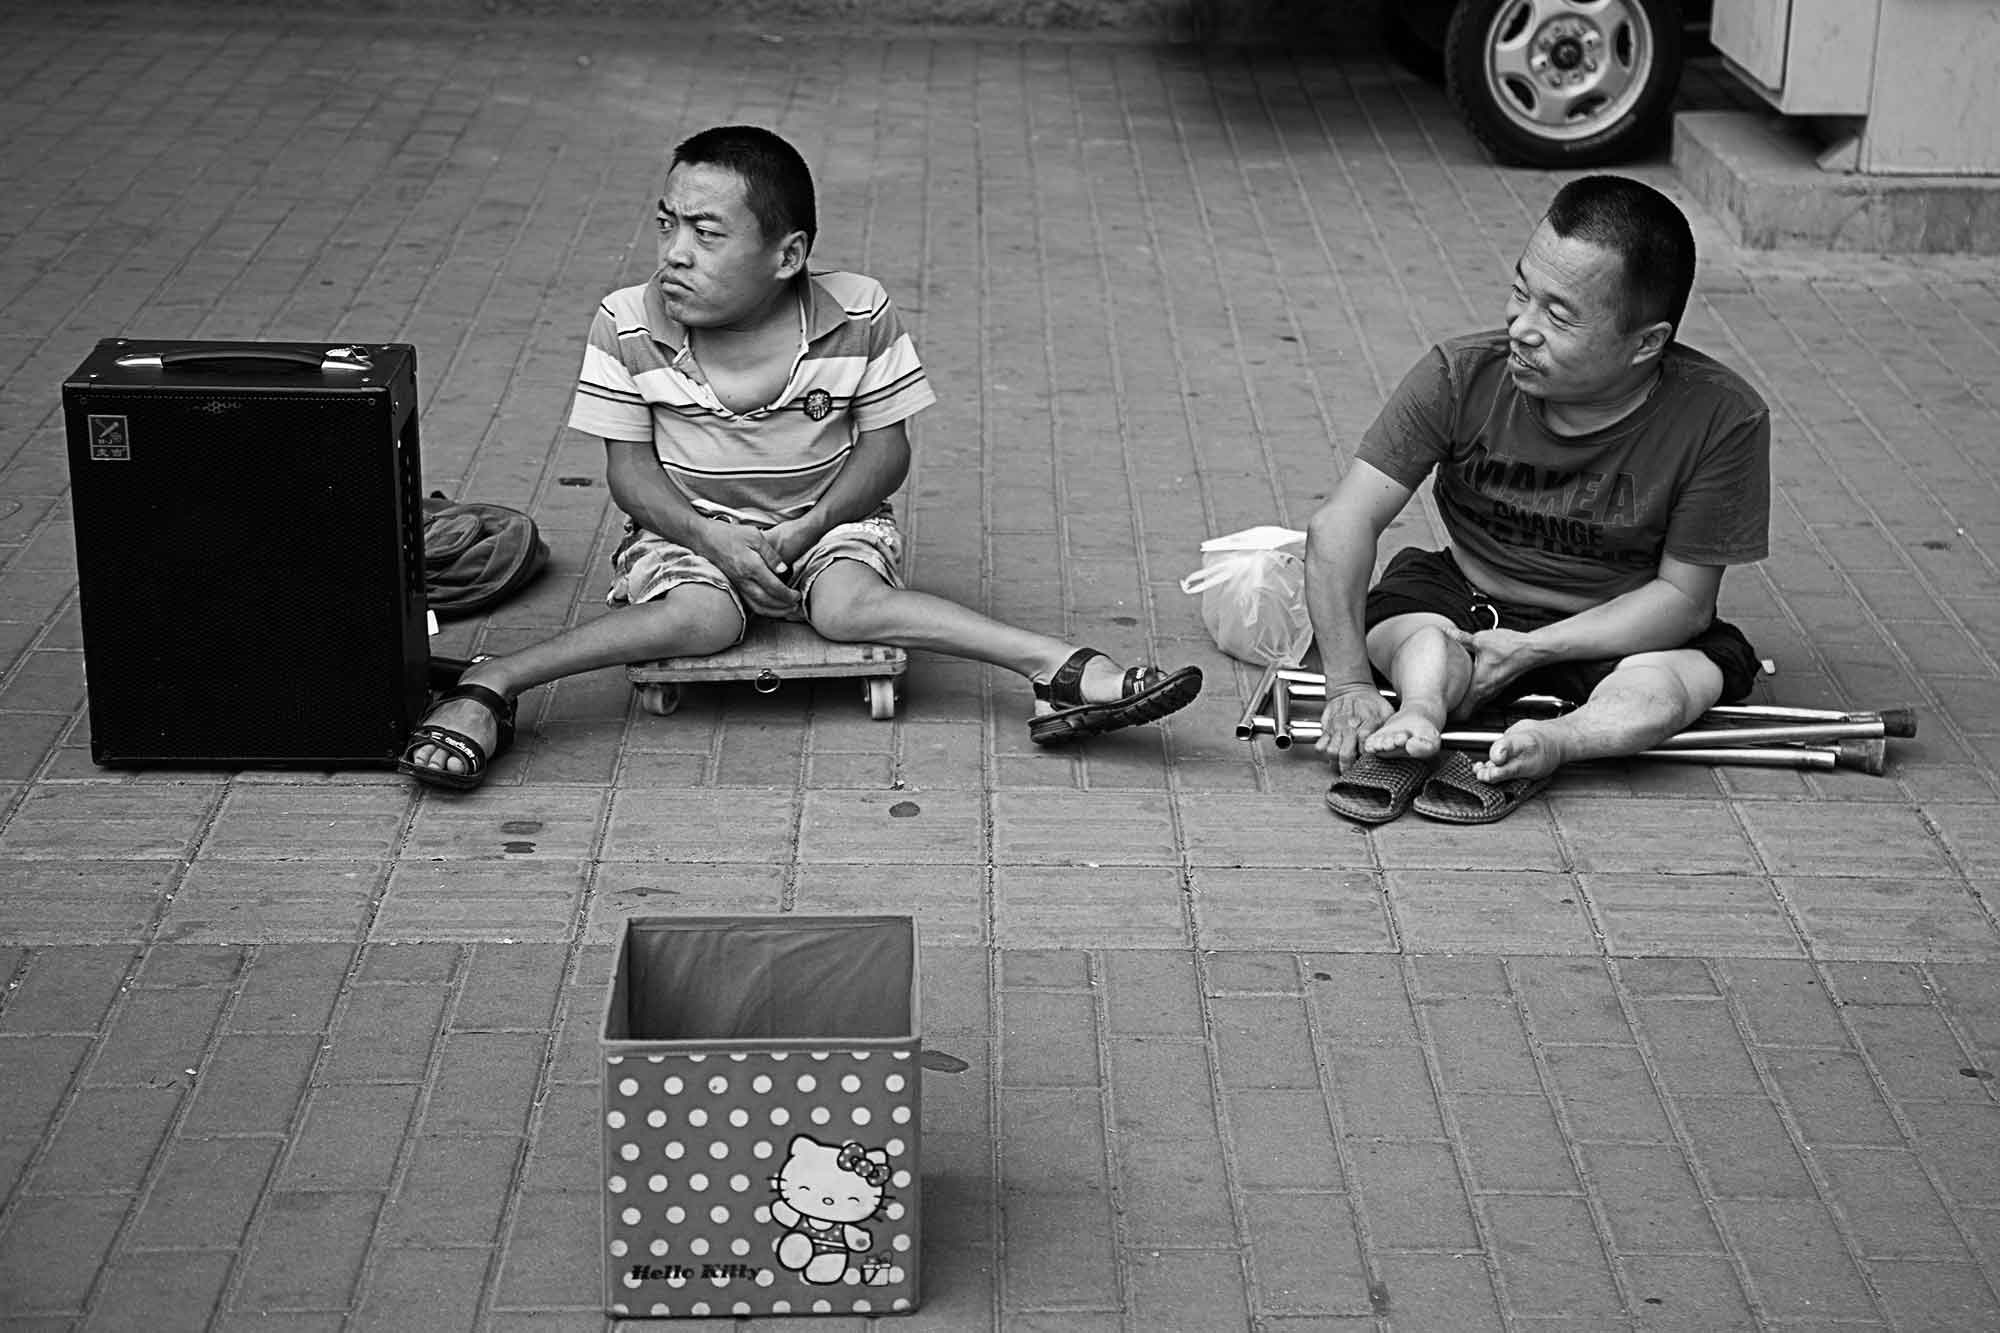 two-disabled-men-beijing-china